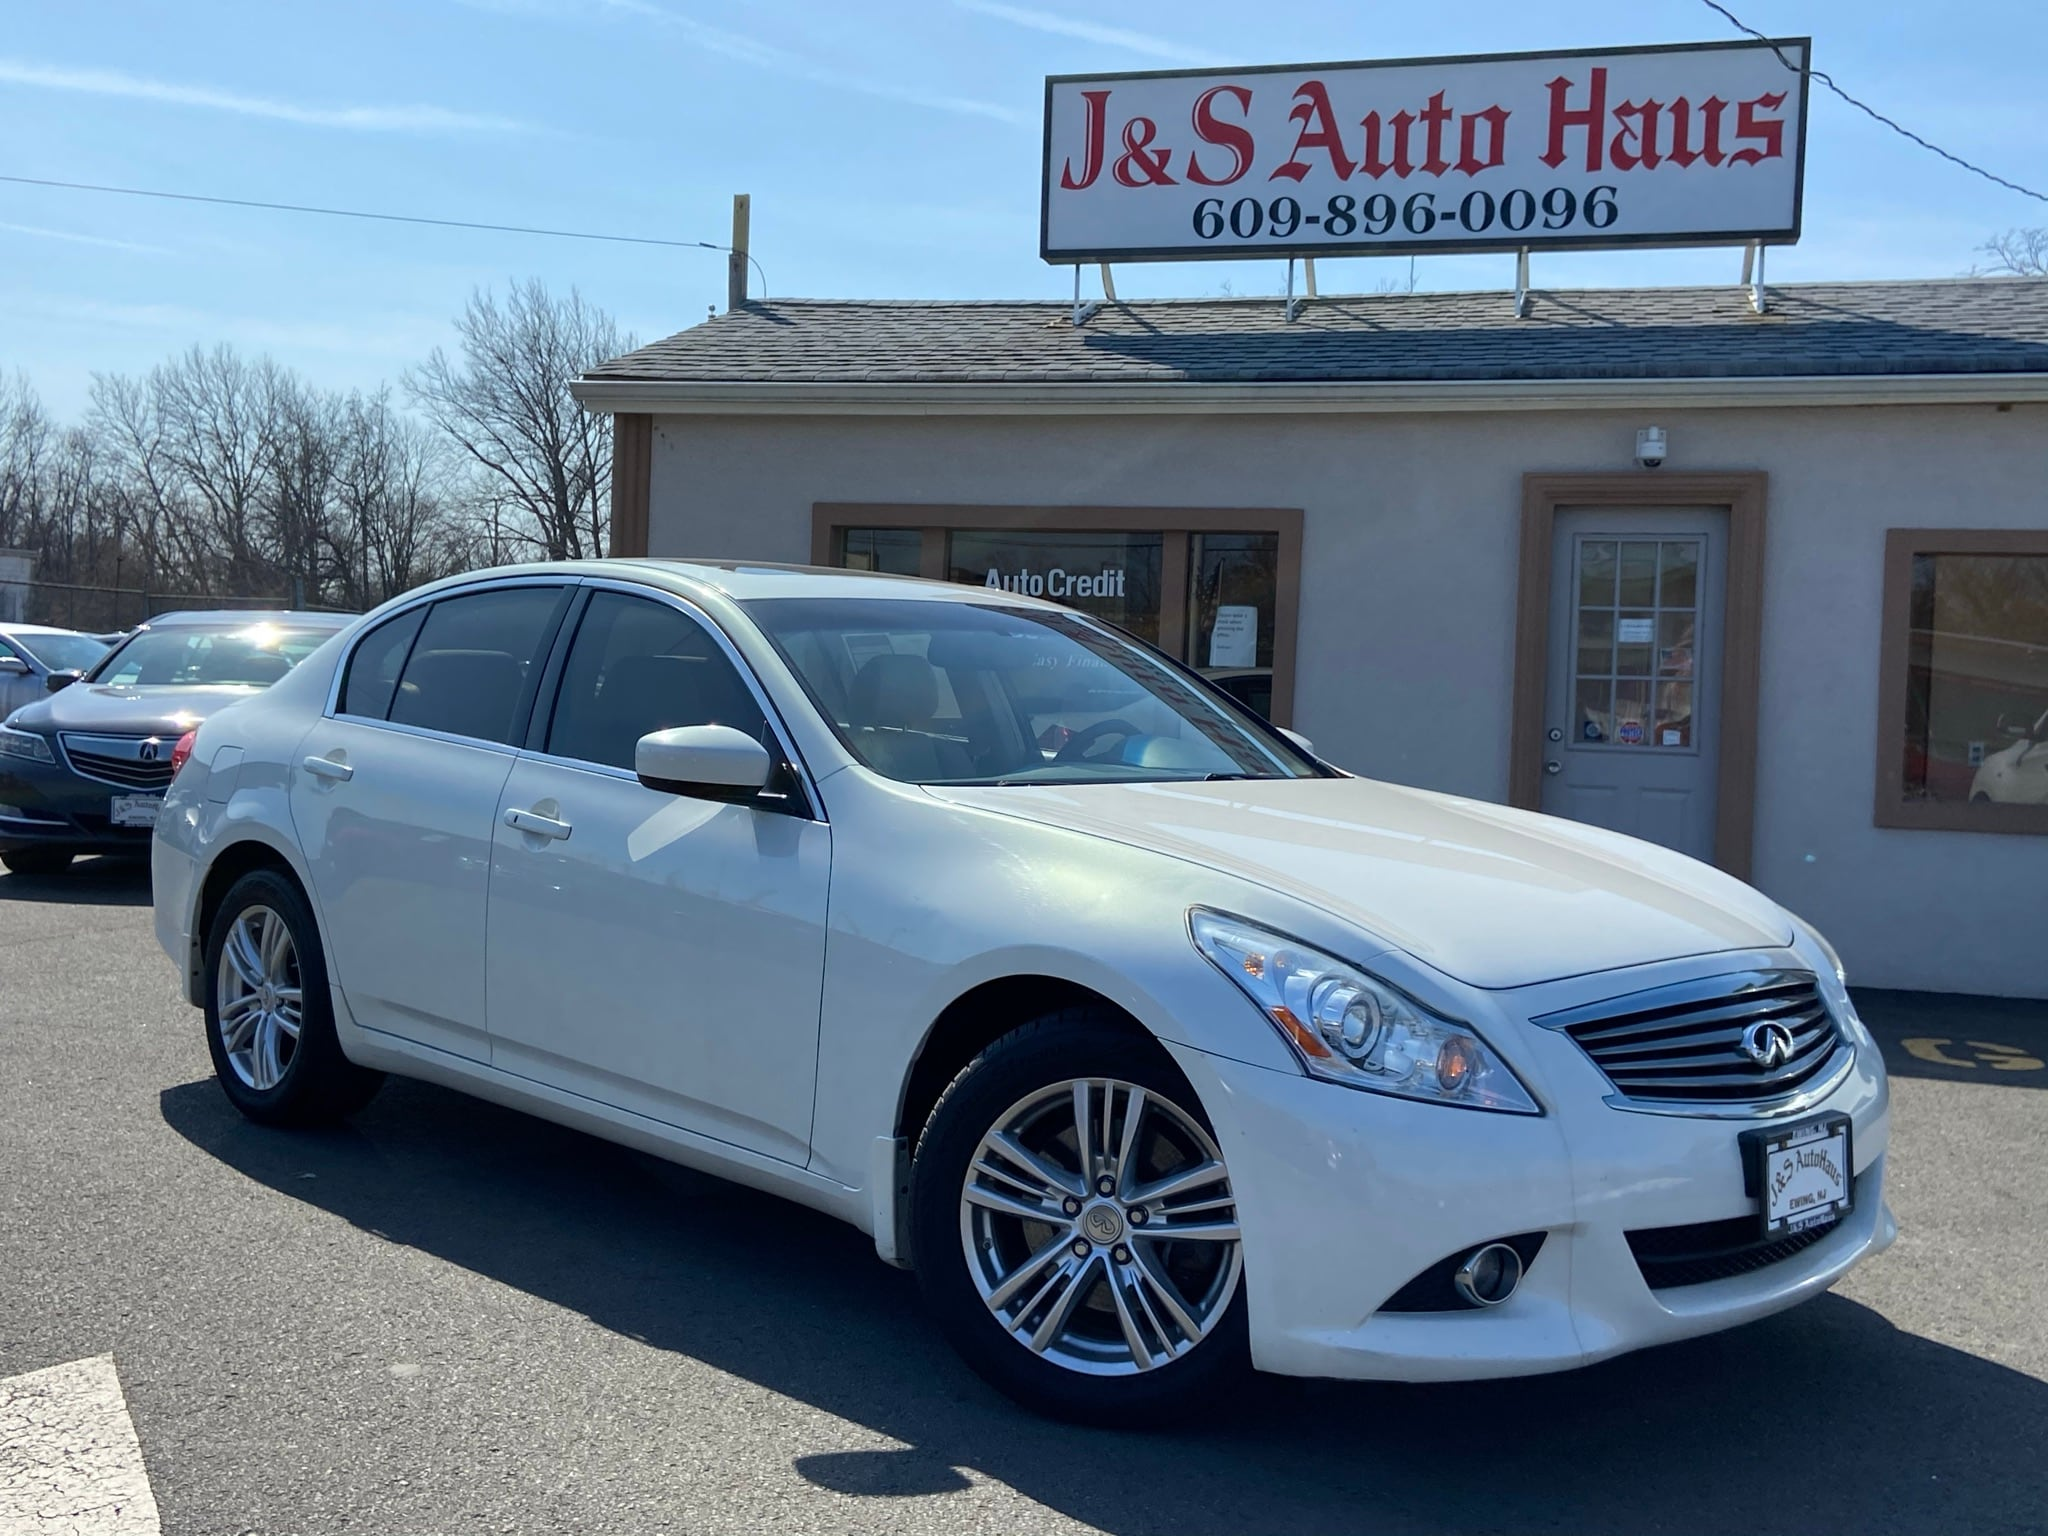 Used Infiniti G37 Sedan Hamilton Township Nj